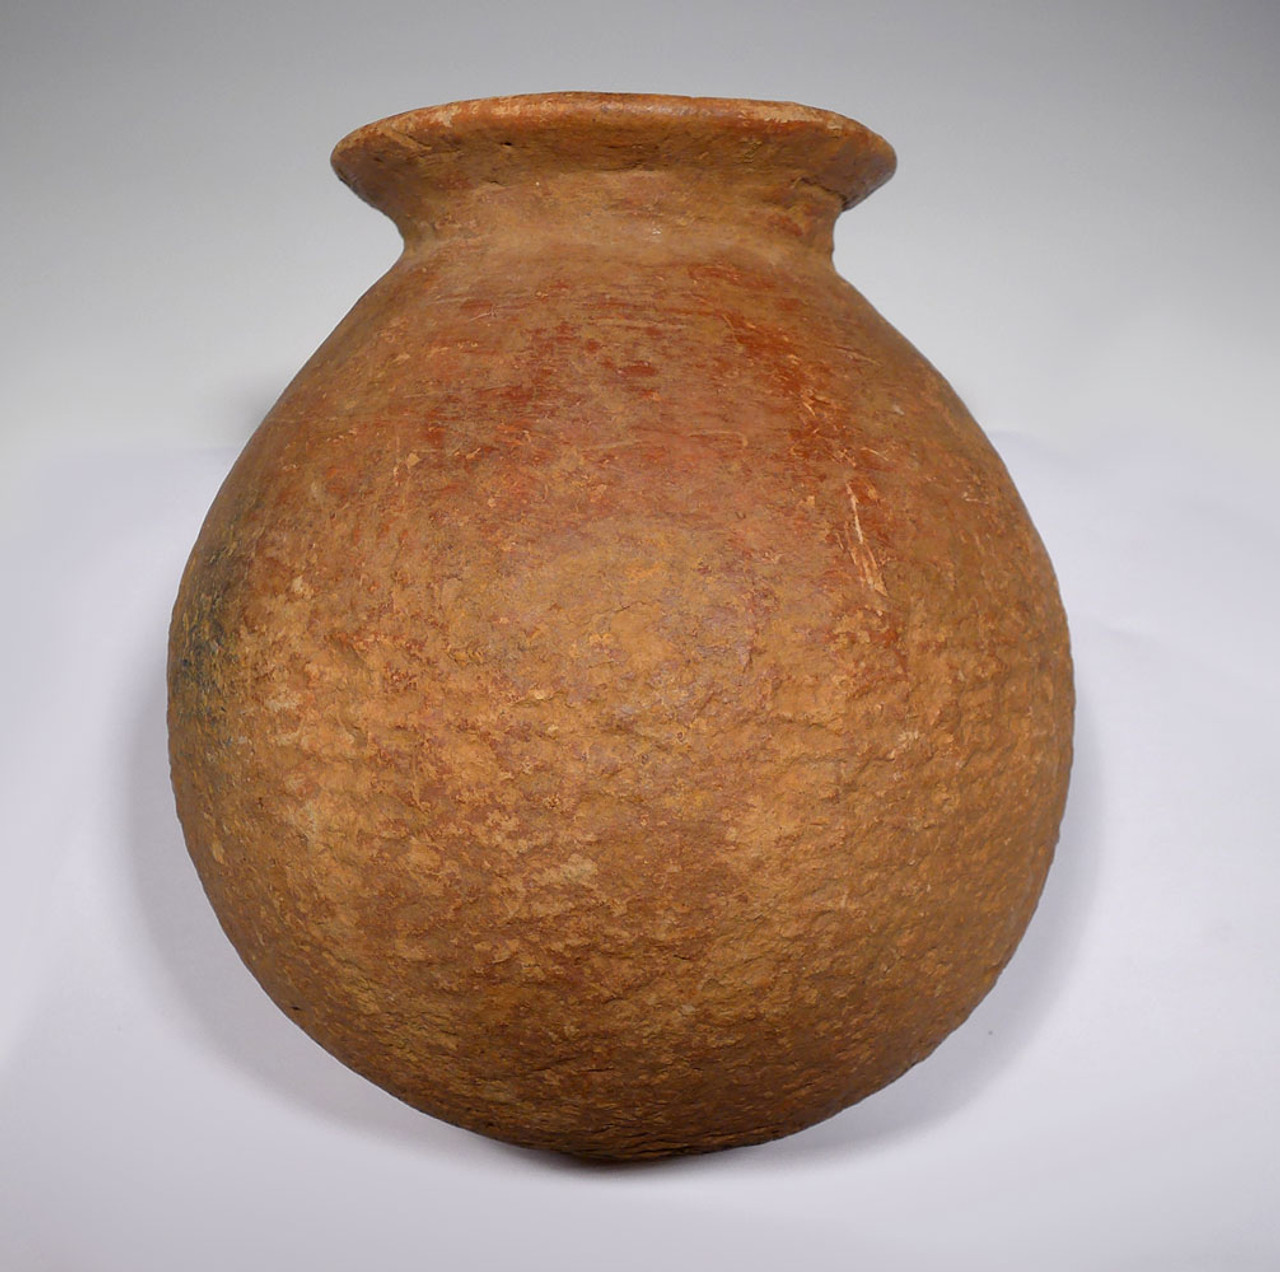 EXTREMELY RARE AFRICAN NEOLITHIC FLARED RIM CERAMIC POT FROM THE WEST SAHEL  *PCAP02